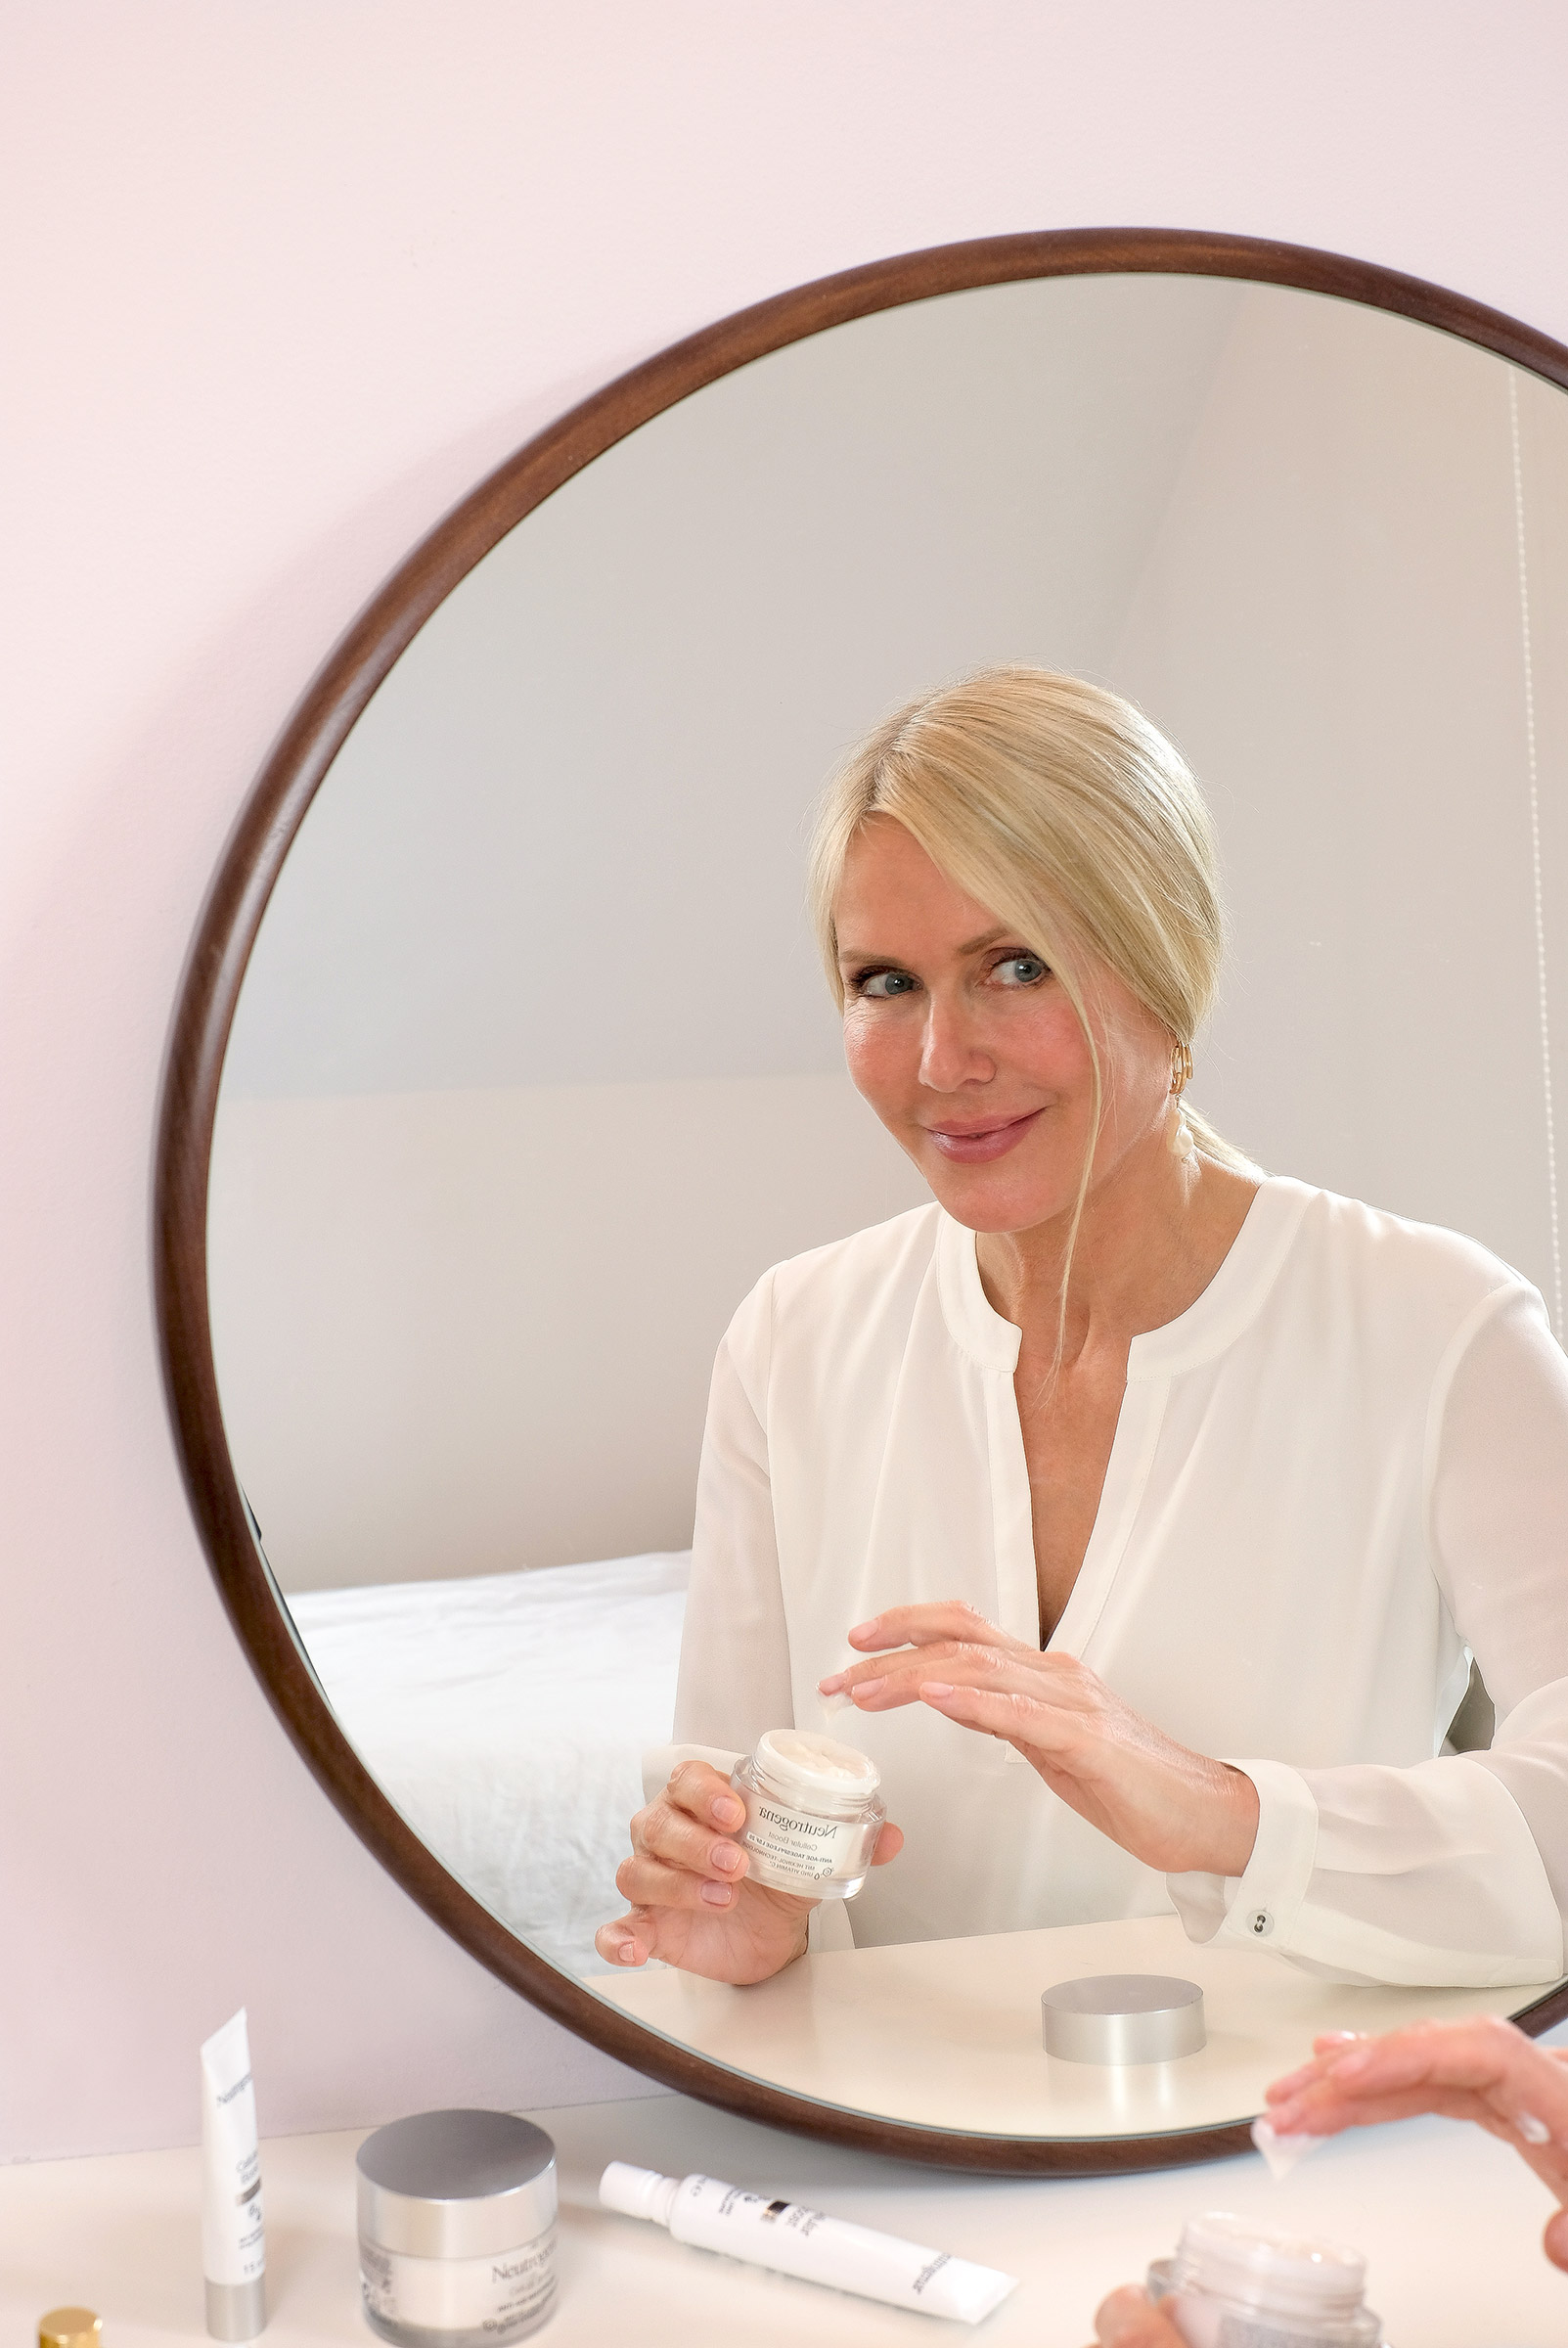 blonde, woman, sitting, in front of a mirror, neutrogena, cellular boost, skincare